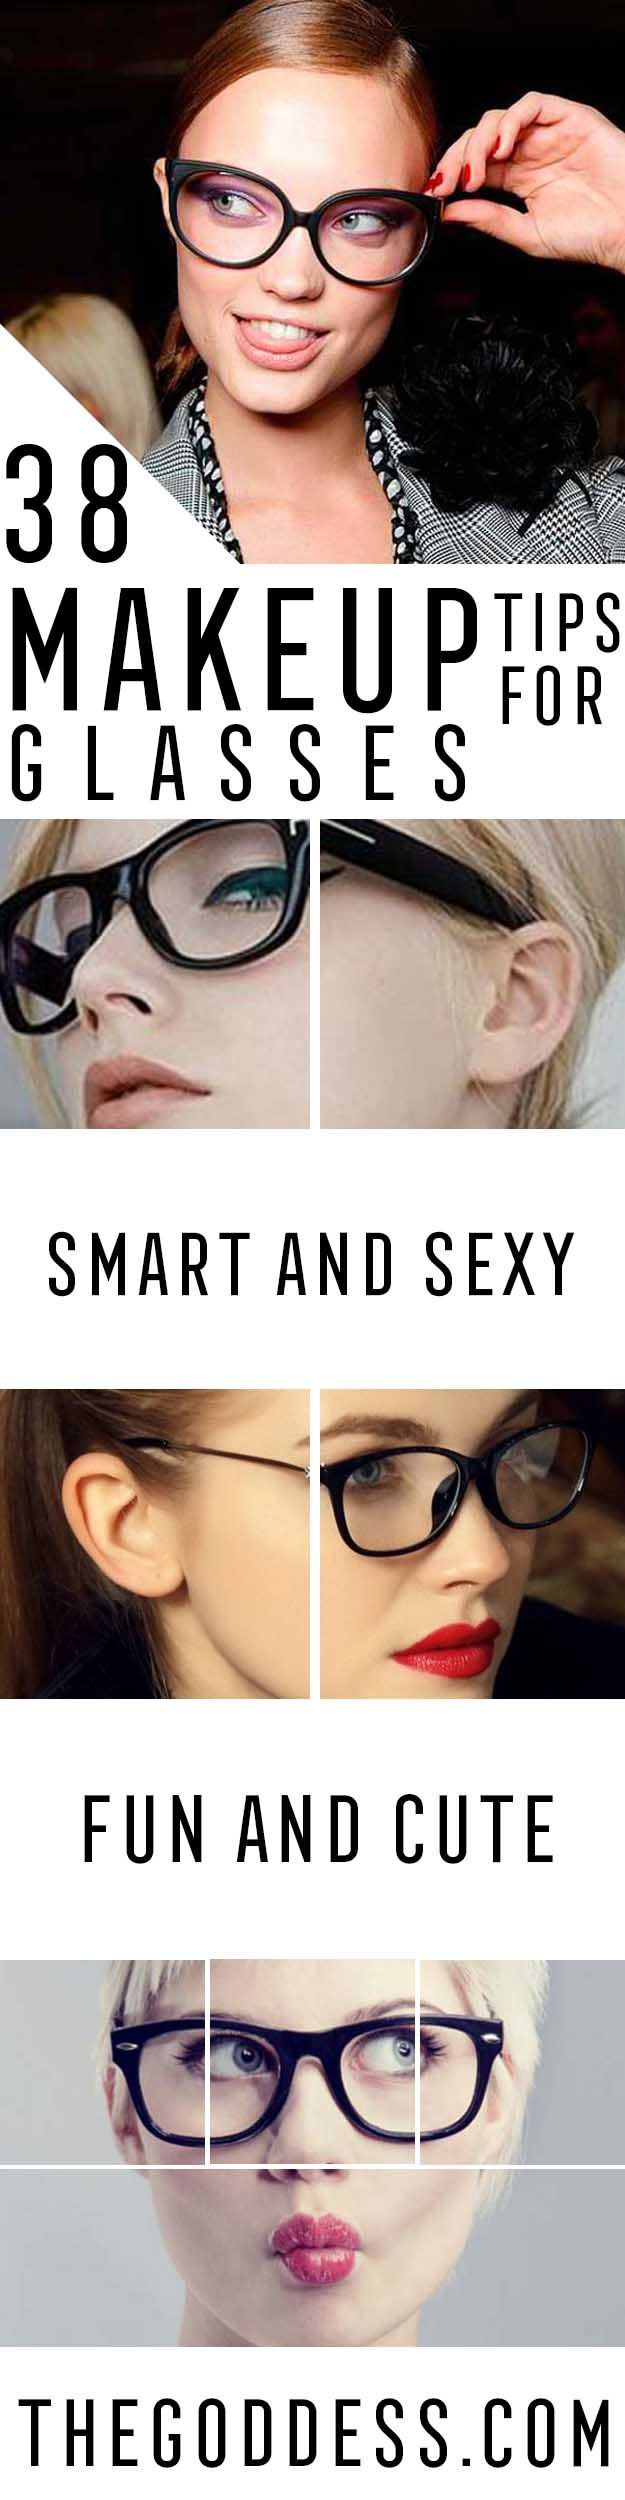 Makeup Tips For Glasses - Simple Step by Step Tutorials for People with Eye Glasses - Easy Beauty Tips for Different Face Shapes, Make Up Ideas and Awesome Hairstyles for Different Types of Eyeglasses - Eyeliner, Foundation, and Nail Art Ideas that Go Great with Lots of Different Looks - thegoddess.com/makeup-tips-for-glasses